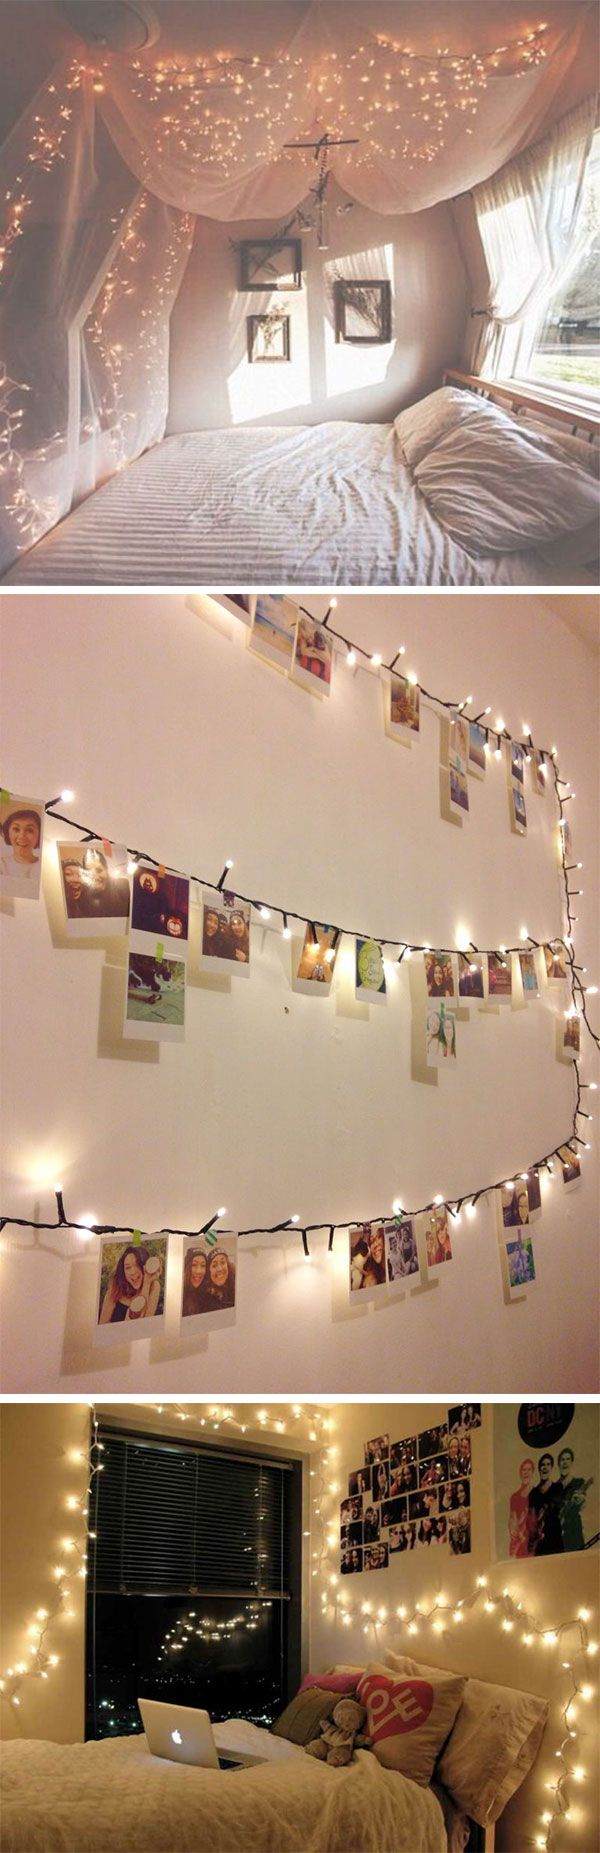 Room Decor For Teens best 25+ diy bedroom decor ideas on pinterest | diy bedroom, diy